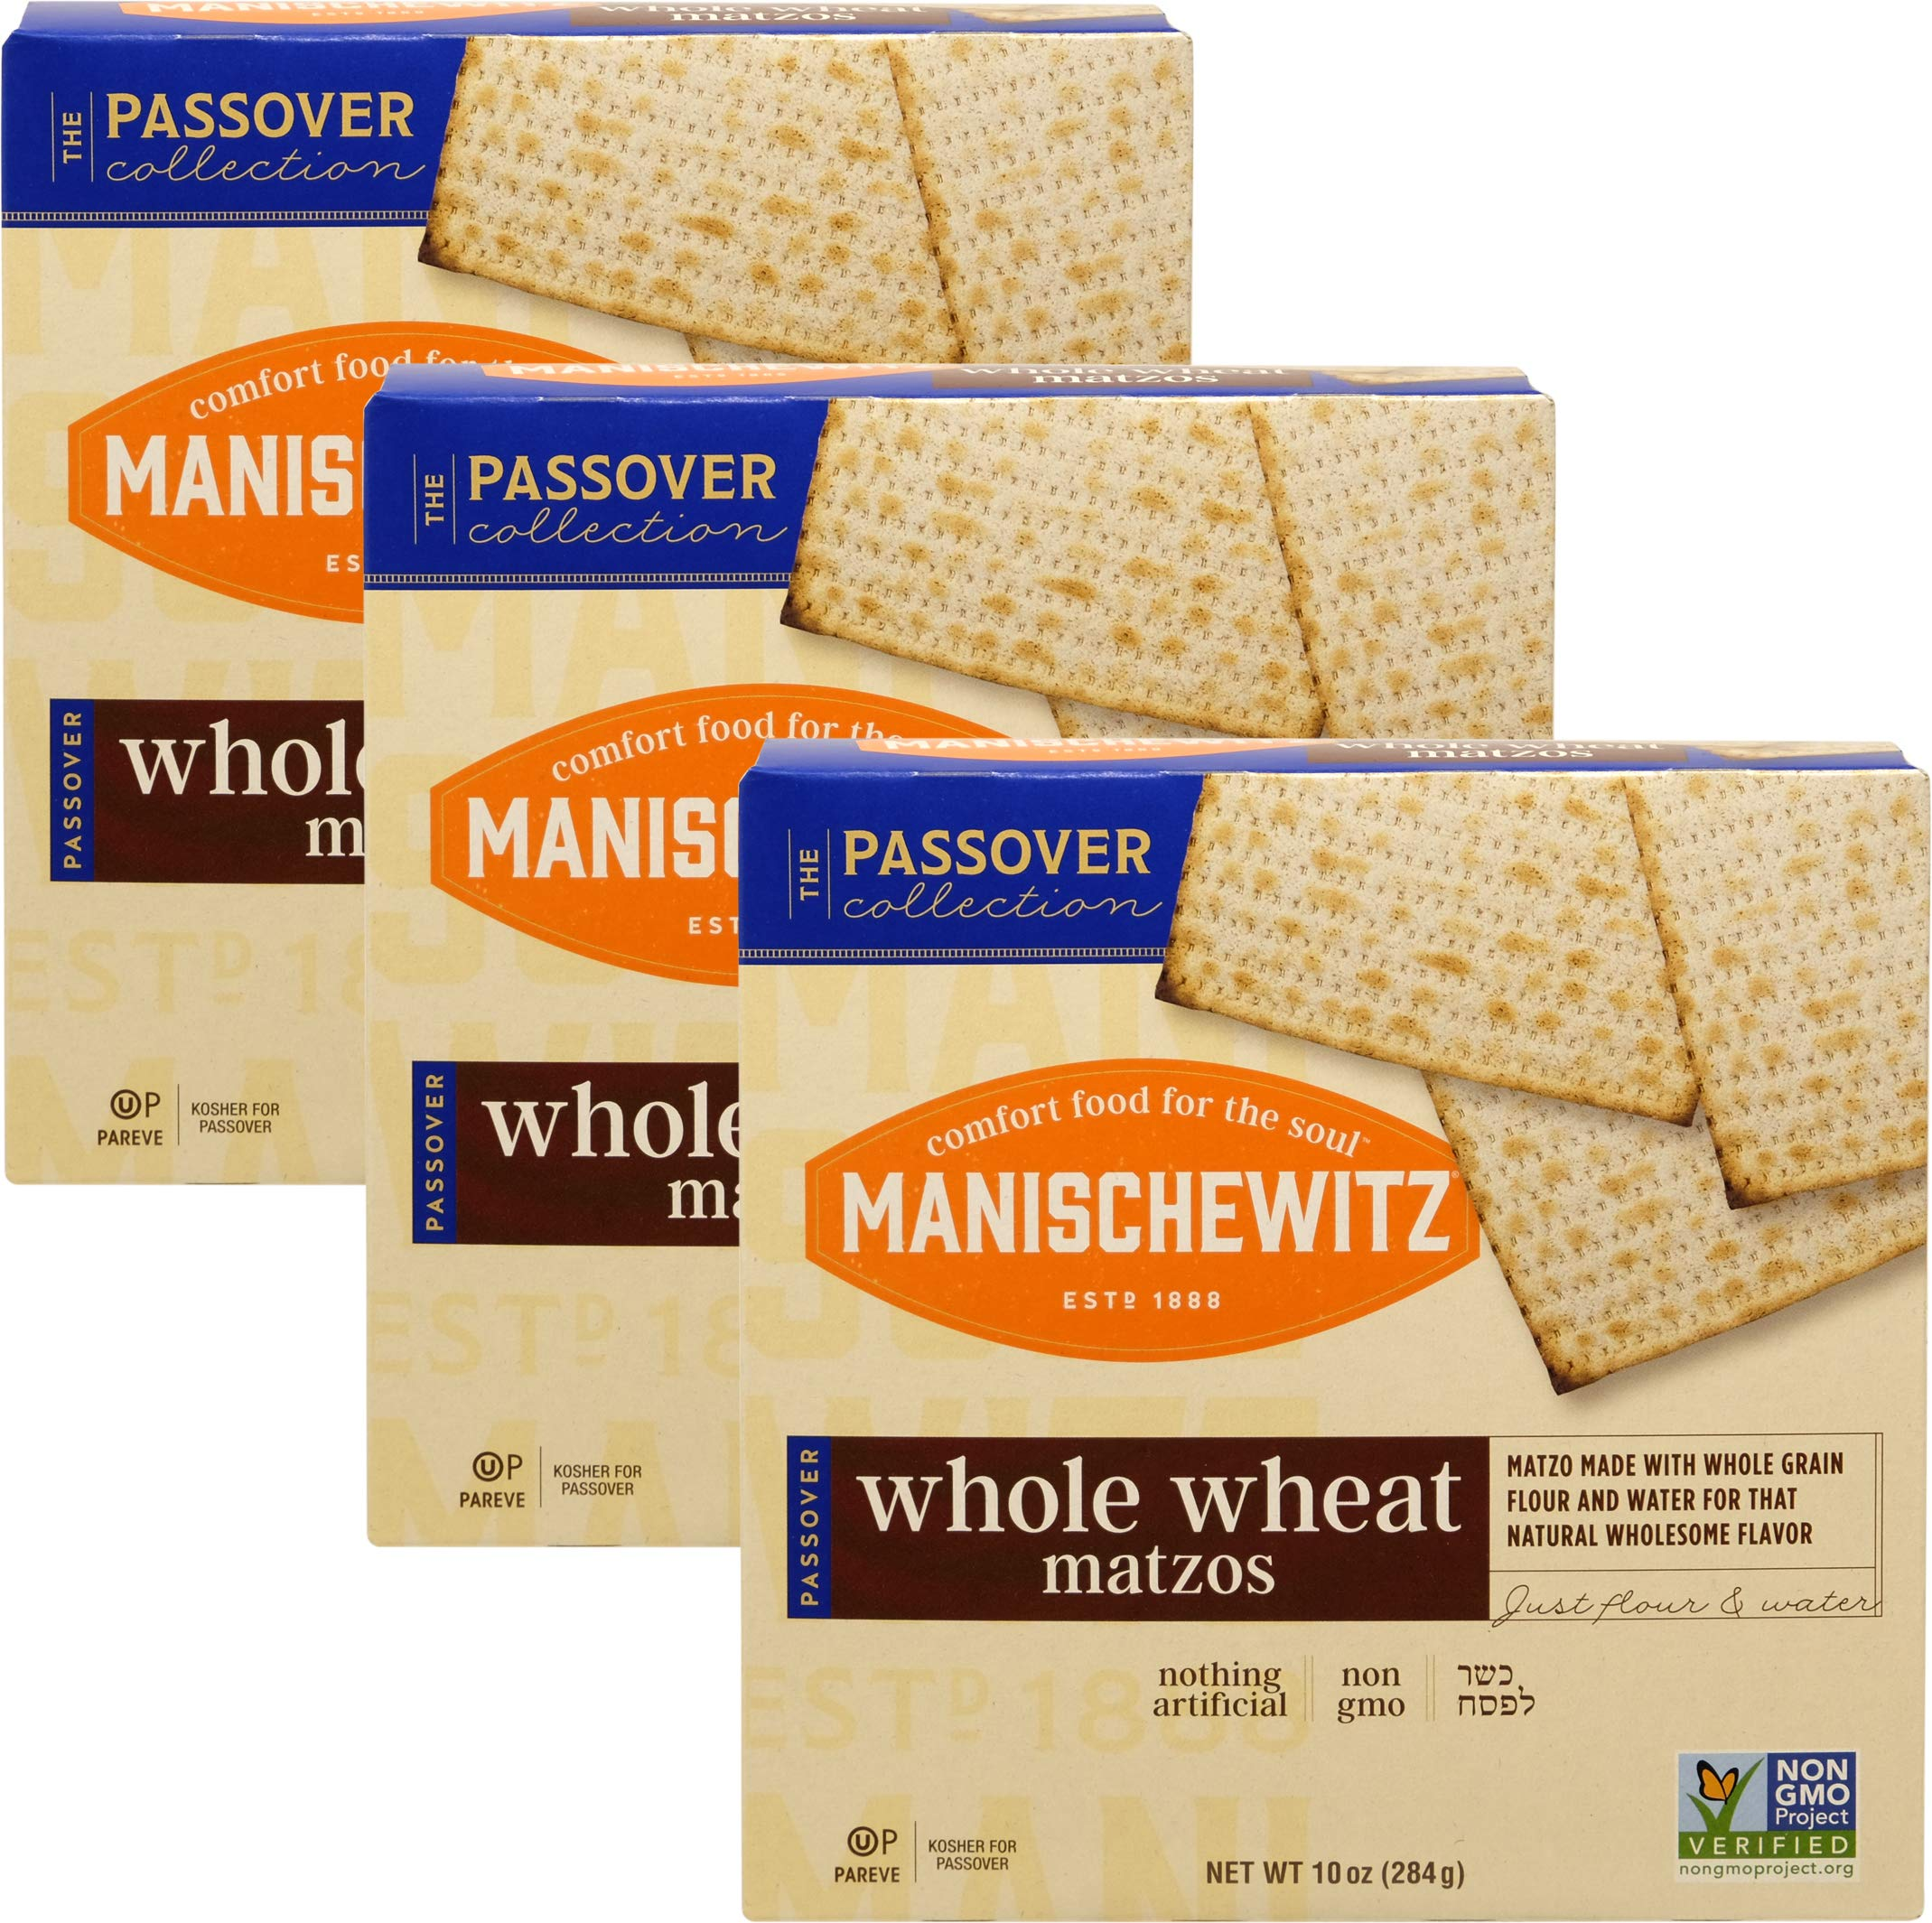 Manischewitz Whole Wheat Matzo, Kosher For Passover, 10 Ounce Box (Pack of 3, Total of 30 Oz)